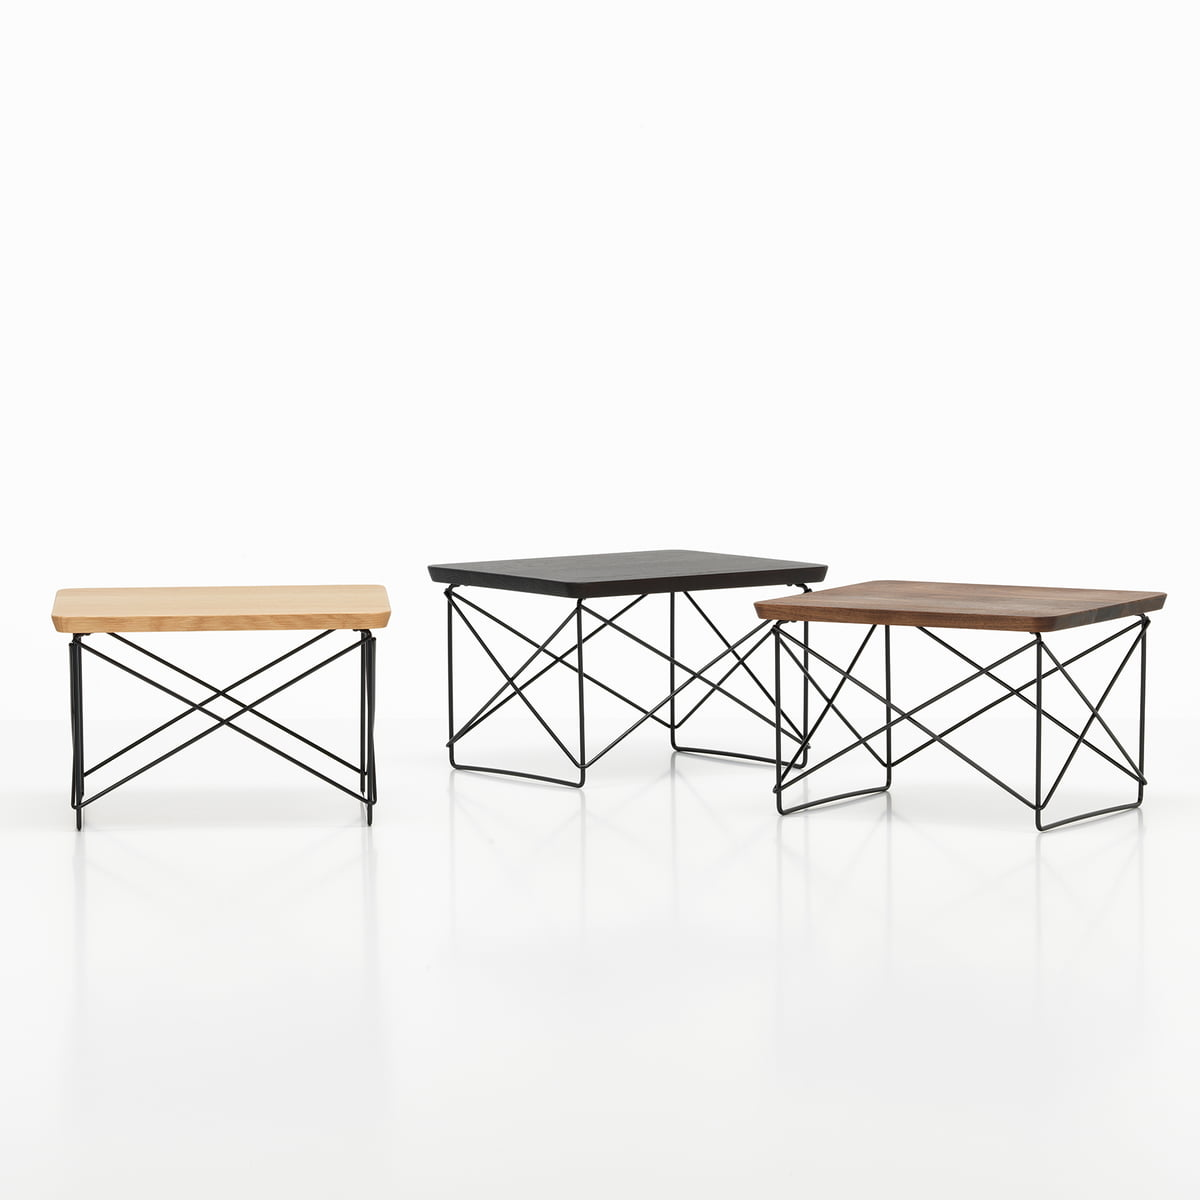 Eames occasional table ltr by vitra connox - Eames occasional table ...